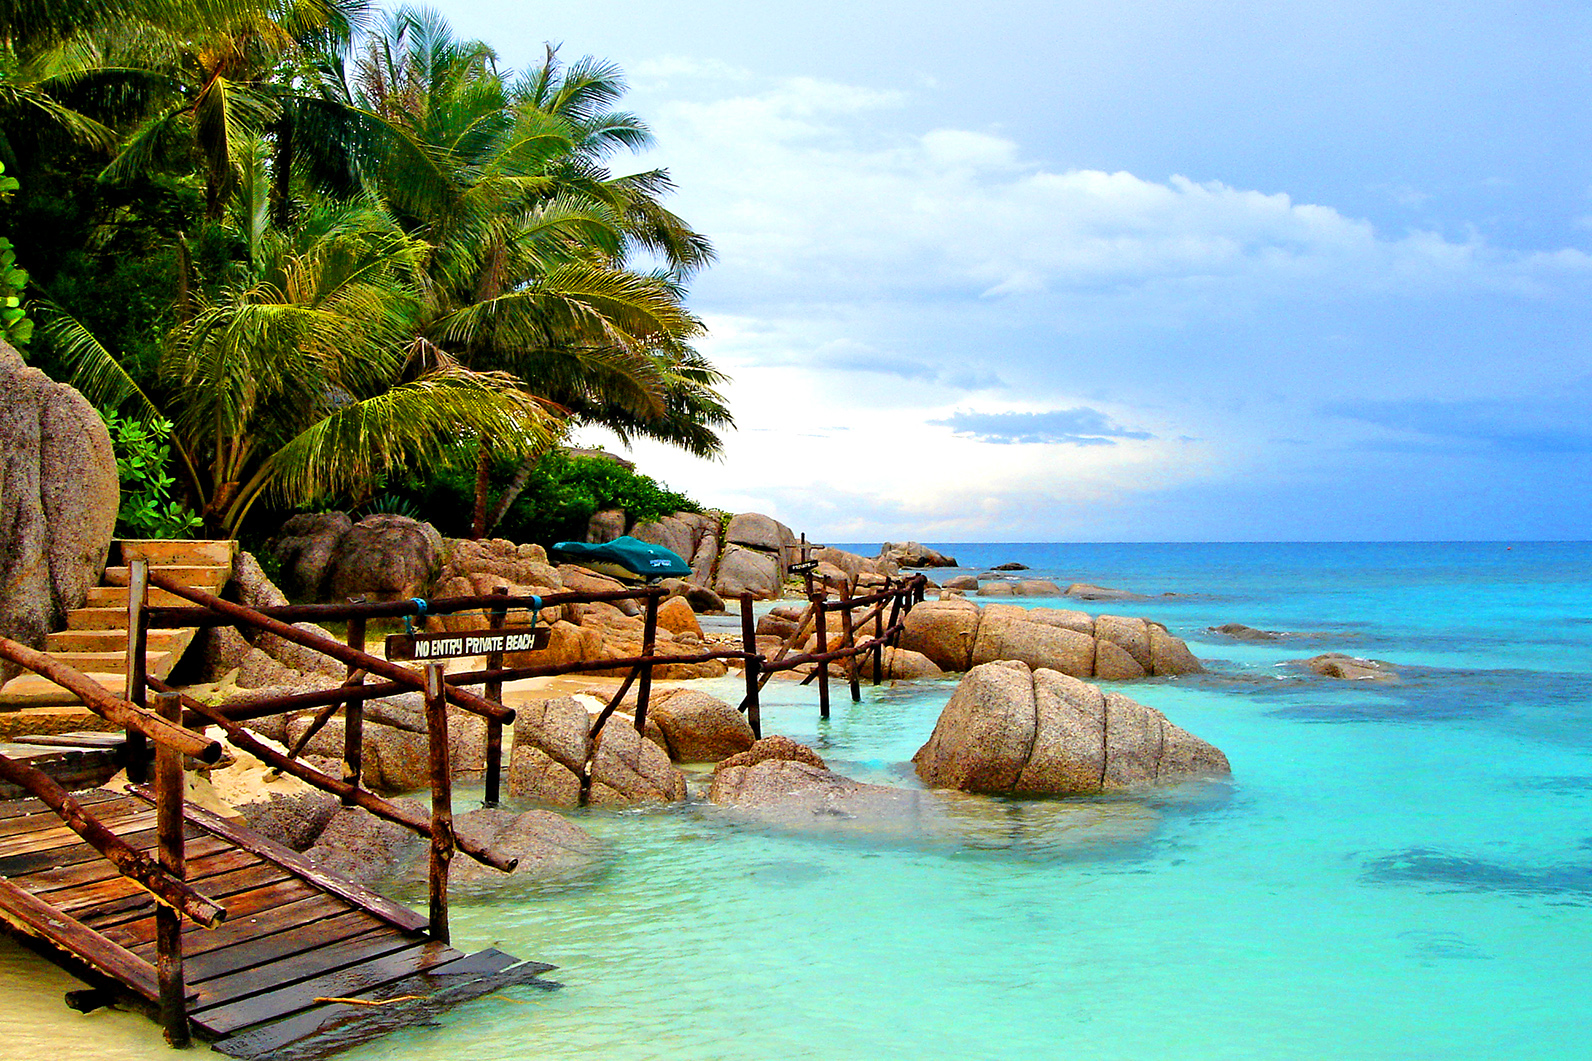 ko tao island-one of the best island of thailand - all about